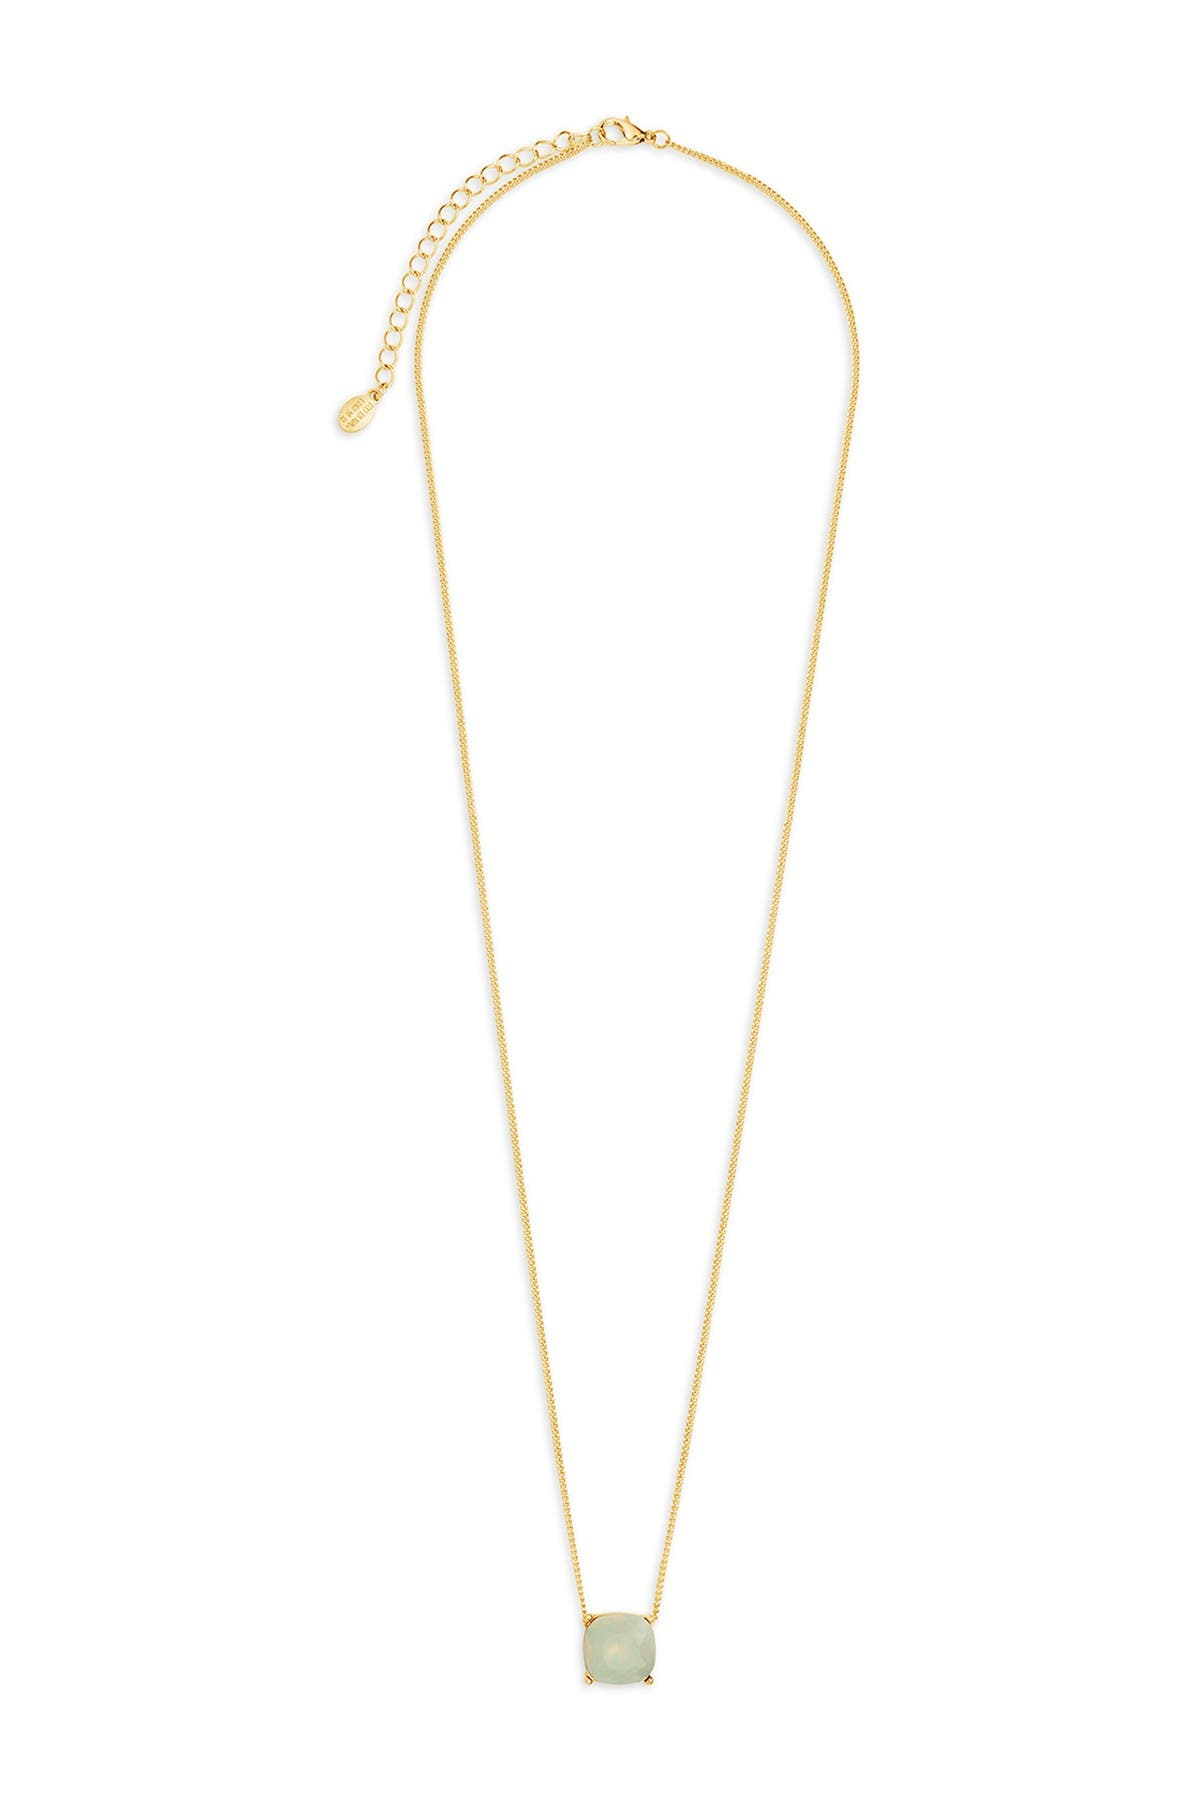 Image of Sterling Forever 14K Gold Plated Brass Opal Haymond Necklace